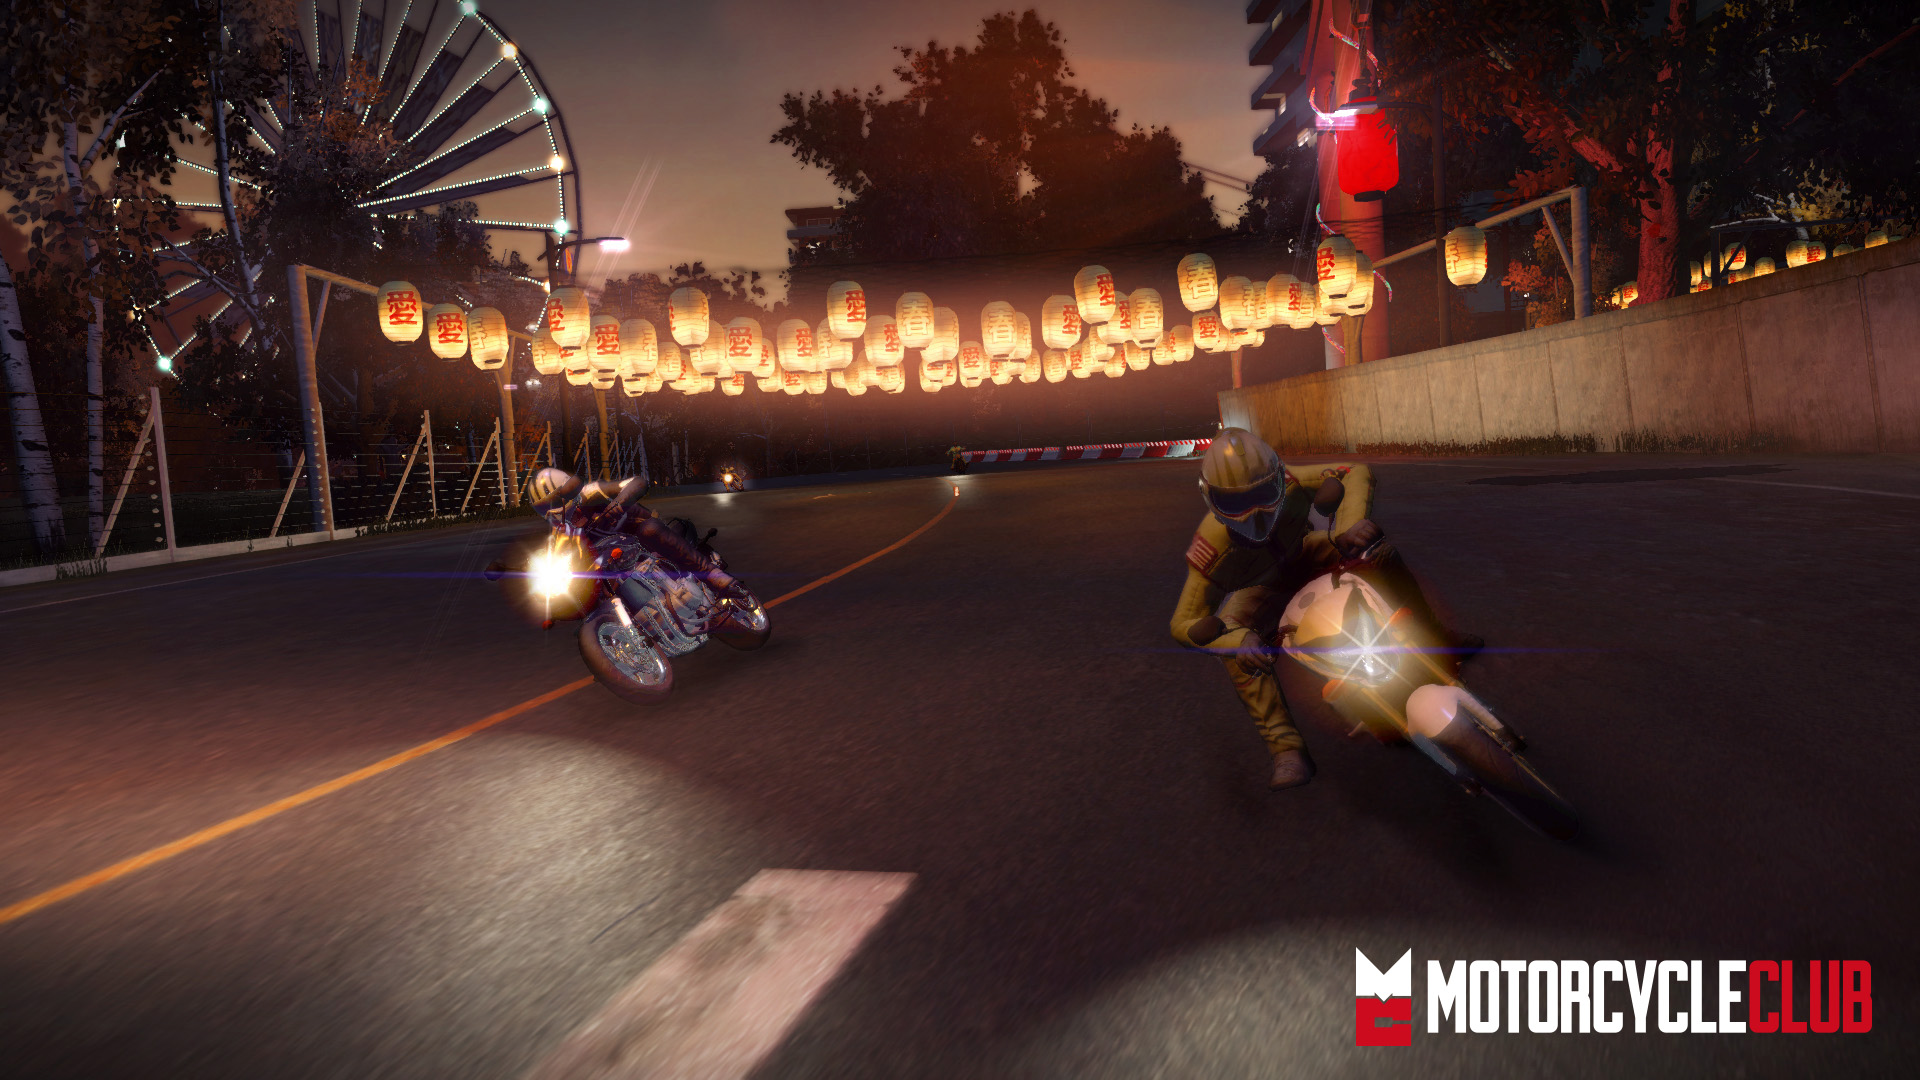 Motorcycle Club [PAL] [XBOX 360]